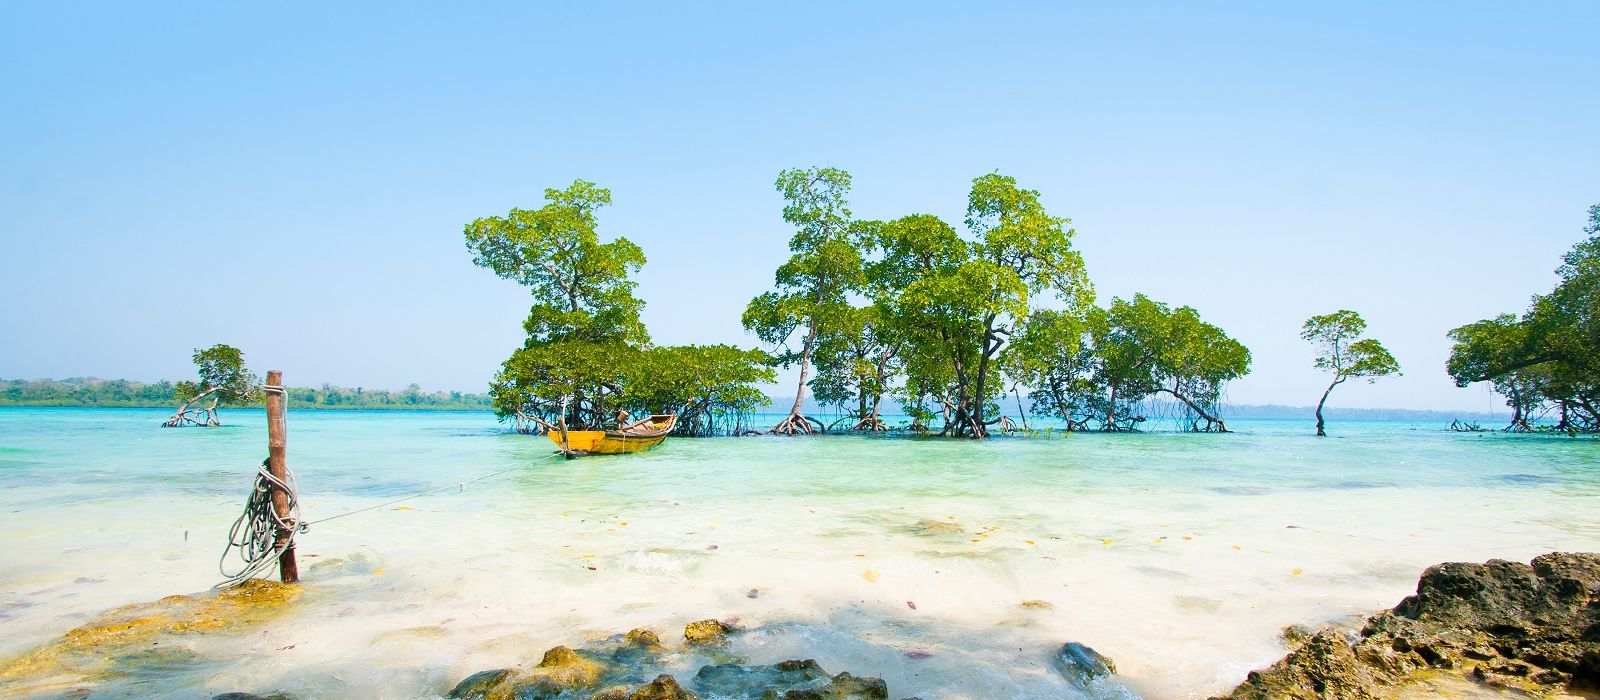 Stunning beach at Havelock Island in the Andamans